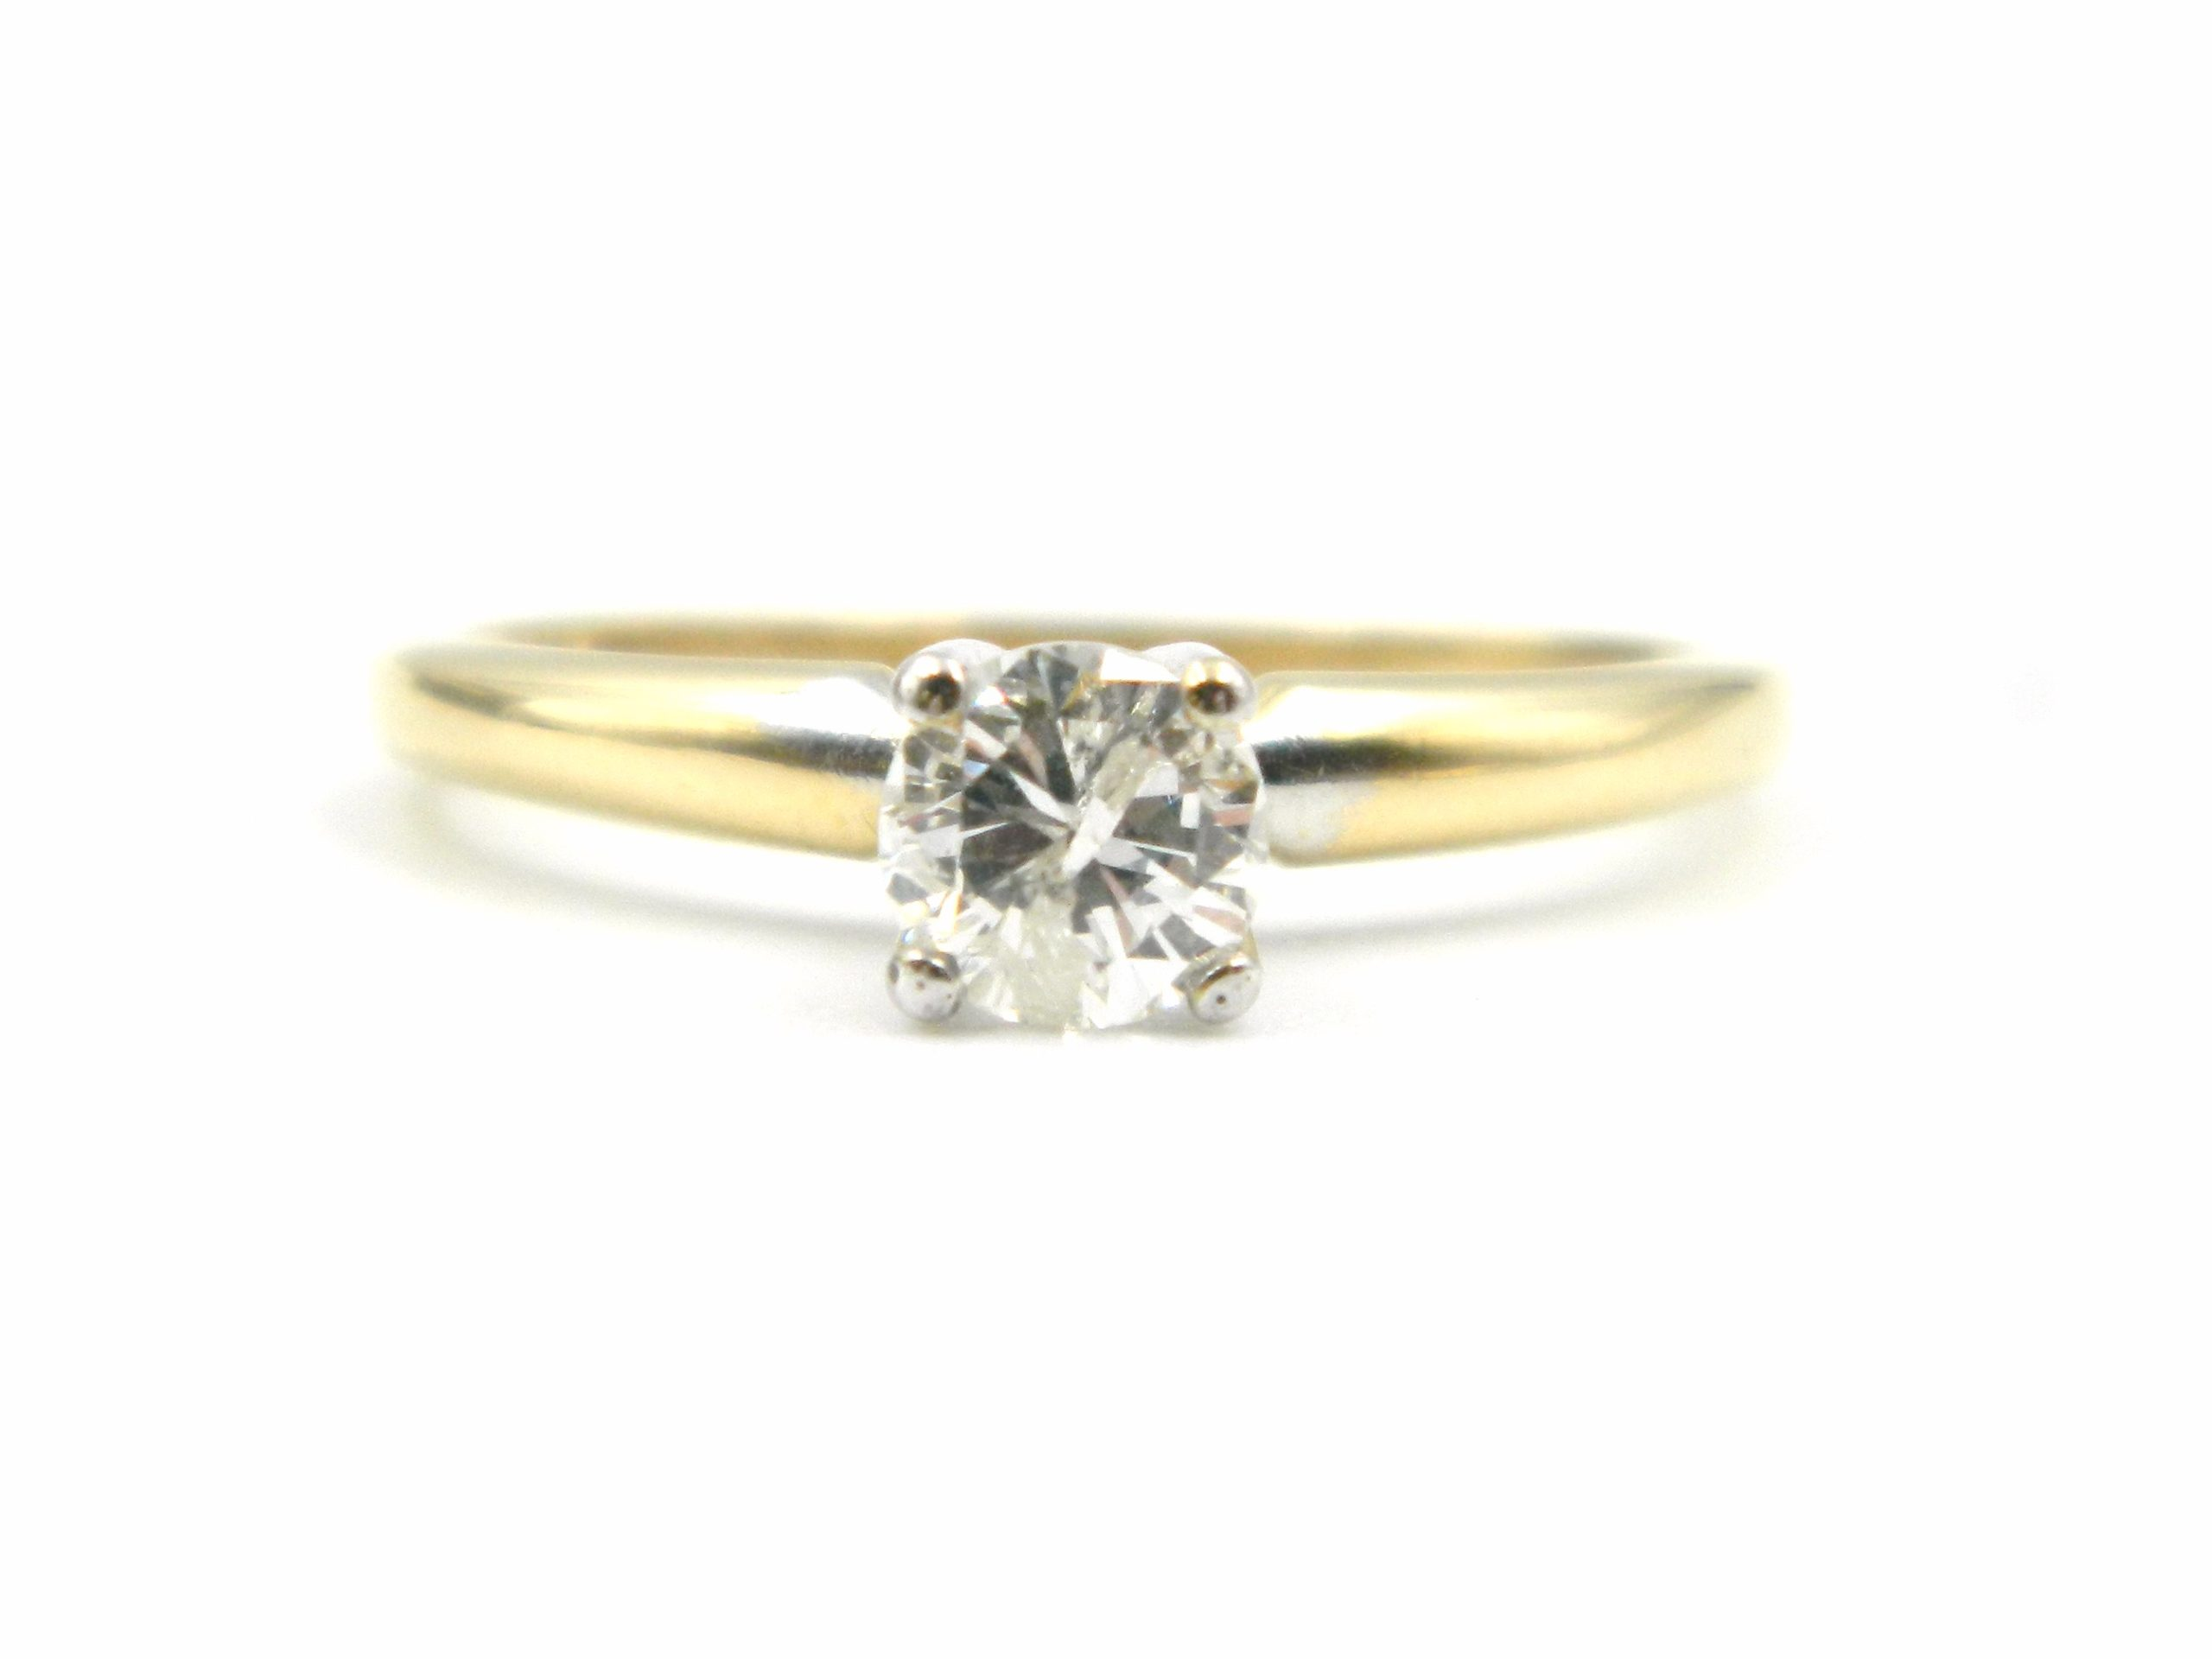 Estate Piece - Yellow Gold Diamond Engagement Ring